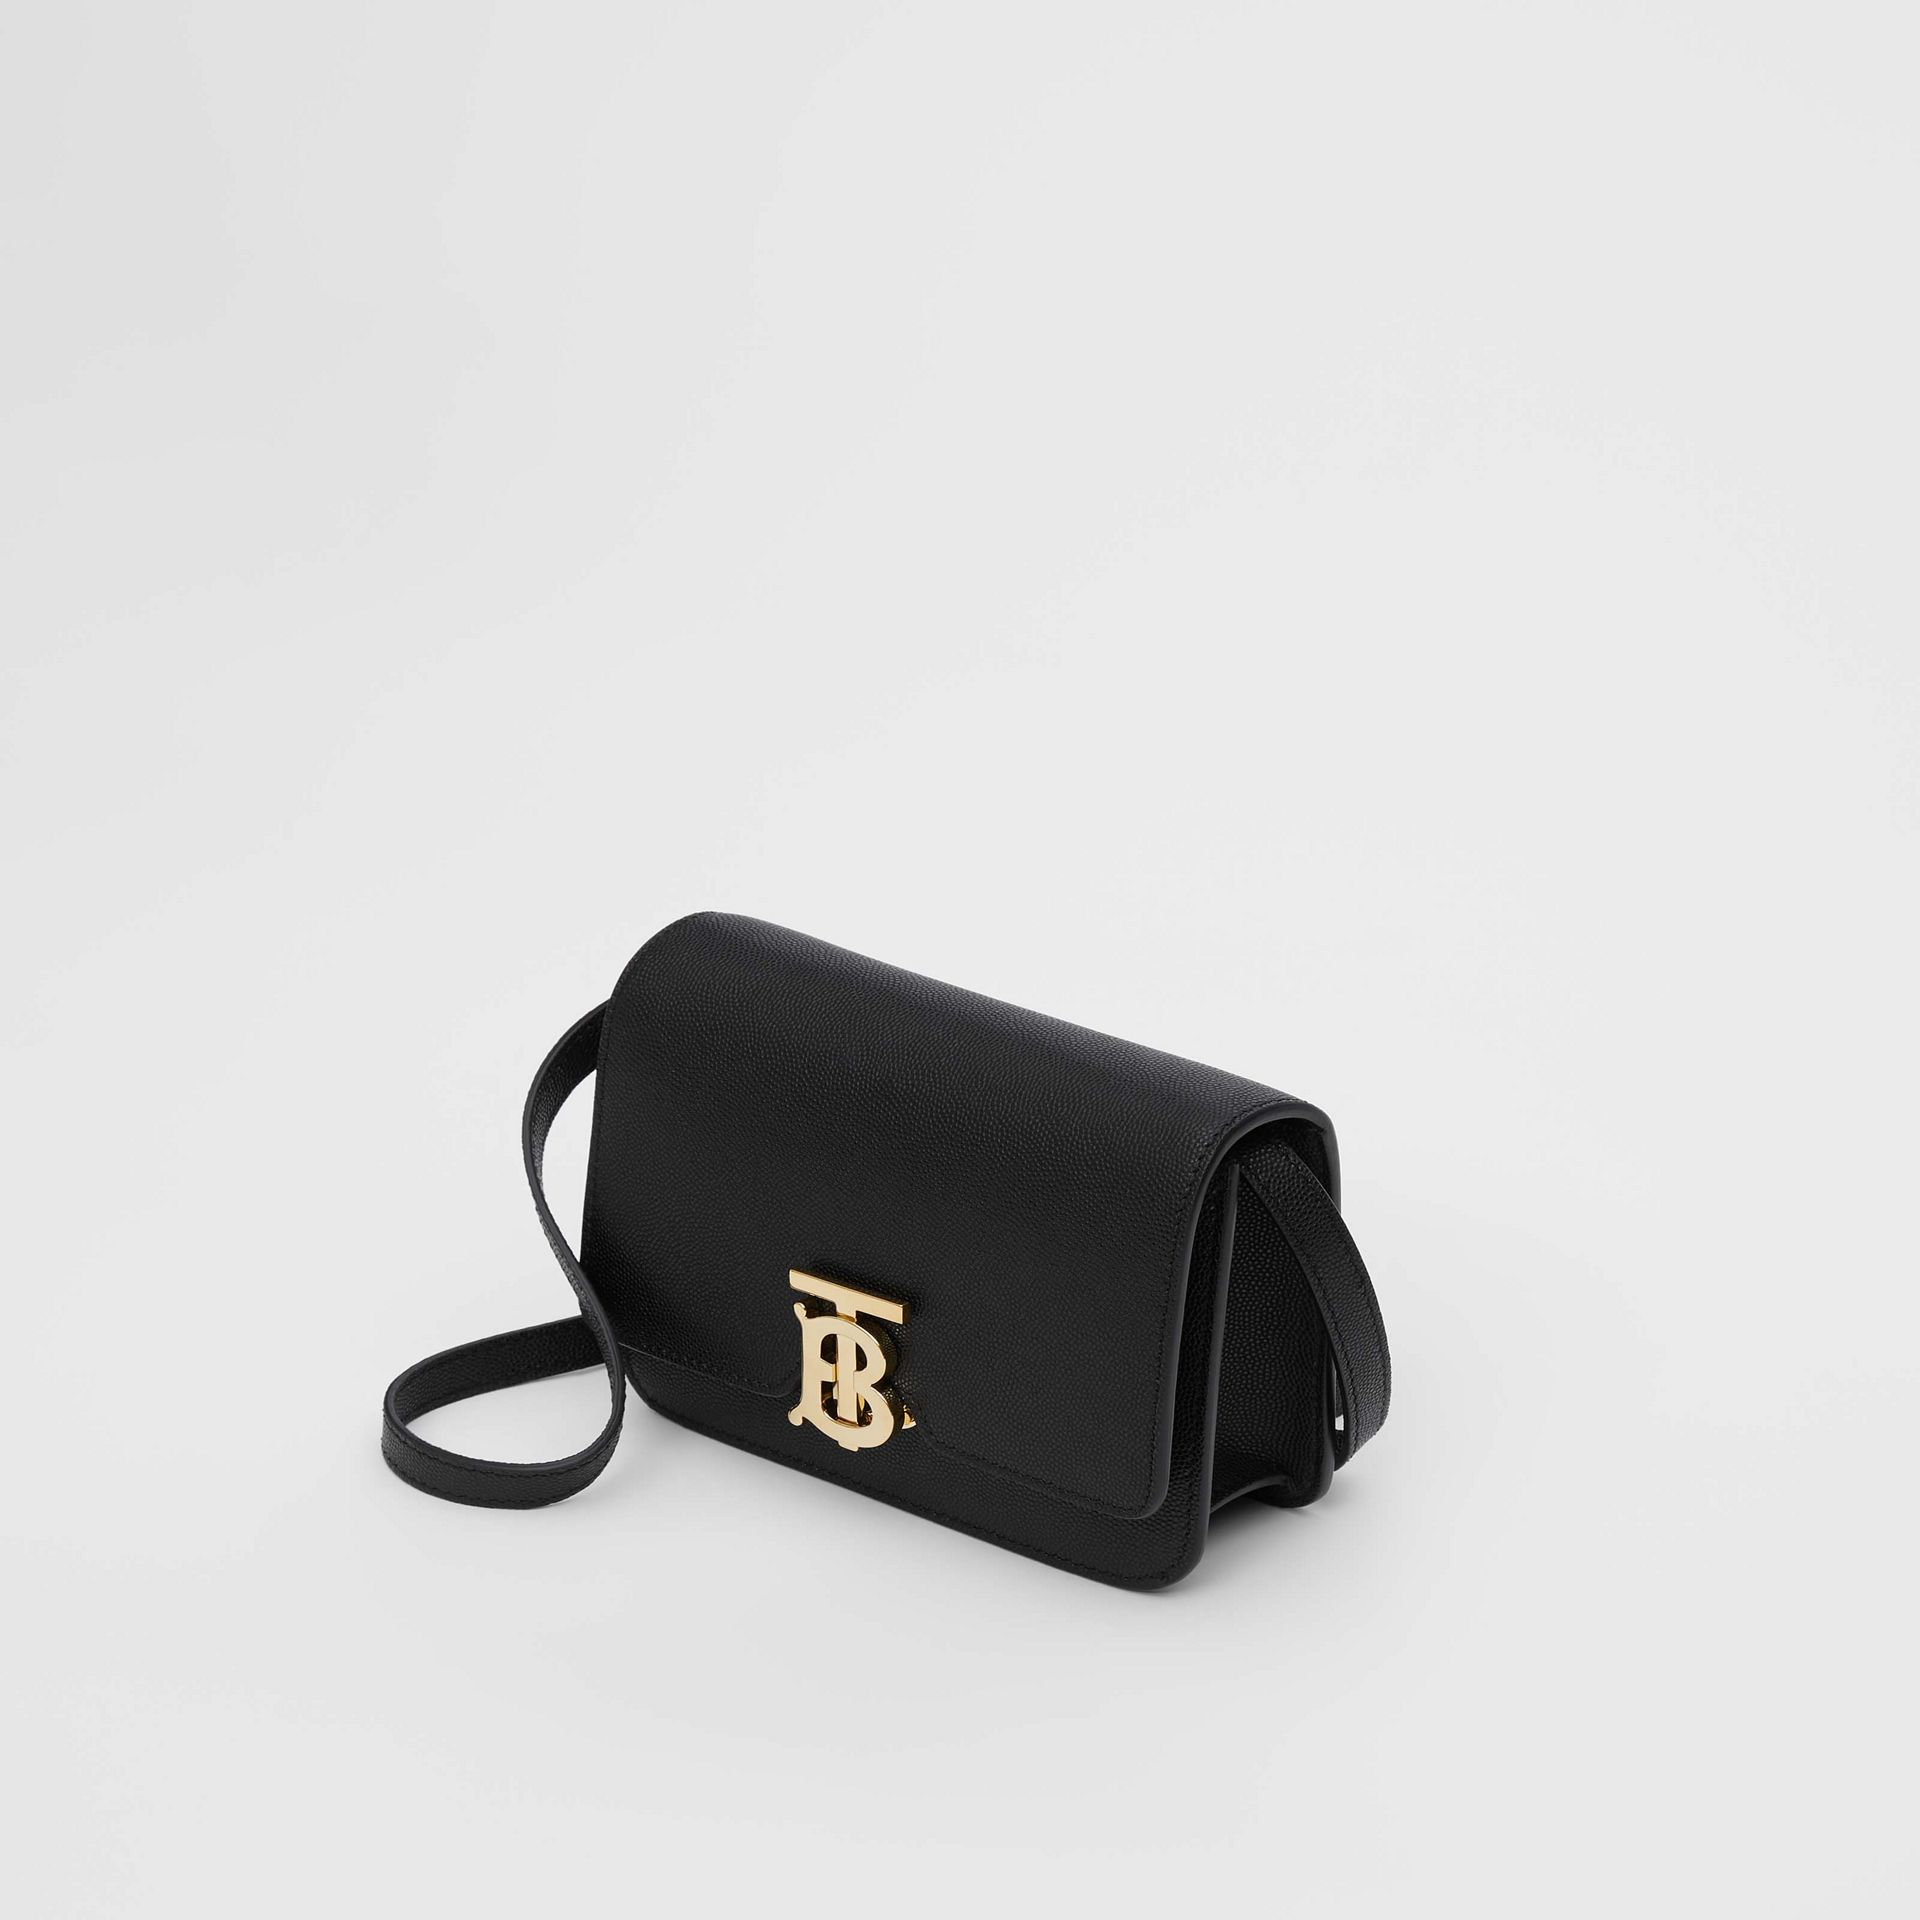 Mini Grainy Leather TB Bag in Black - Women | Burberry - gallery image 3